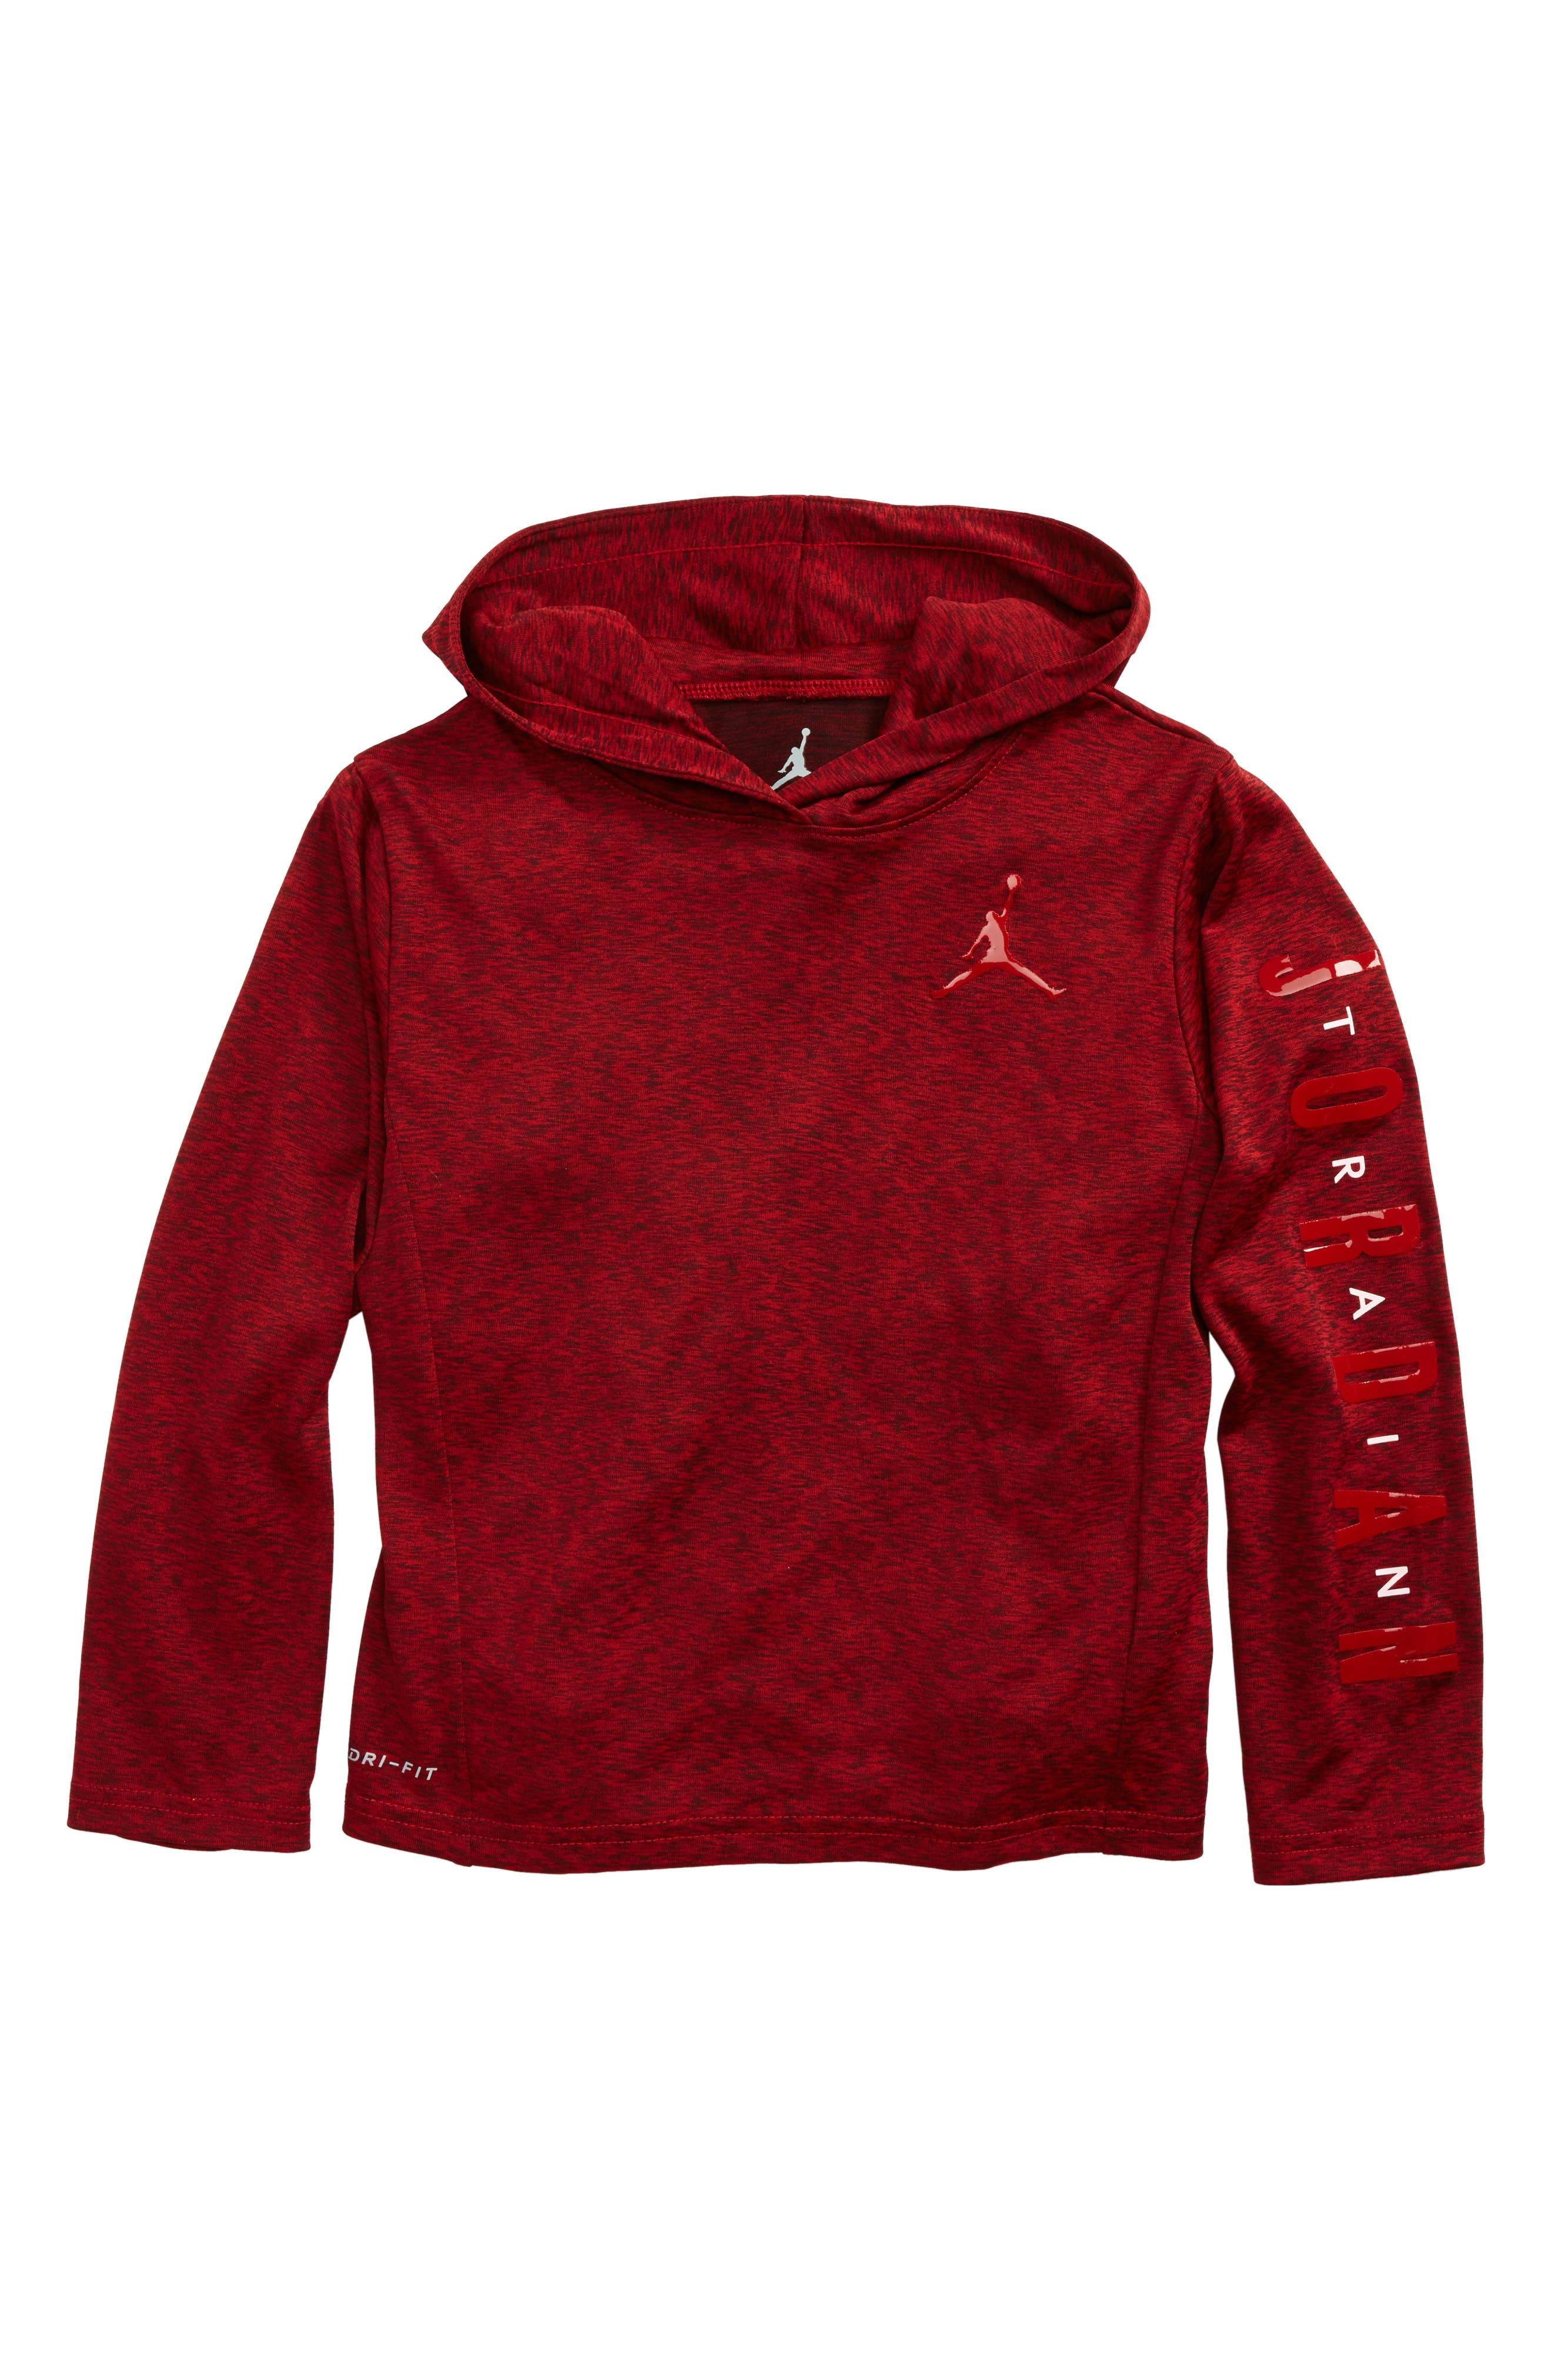 Main Image - Jordan Dri-FIT Hooded T-Shirt (Toddler Boys & Little Boys)